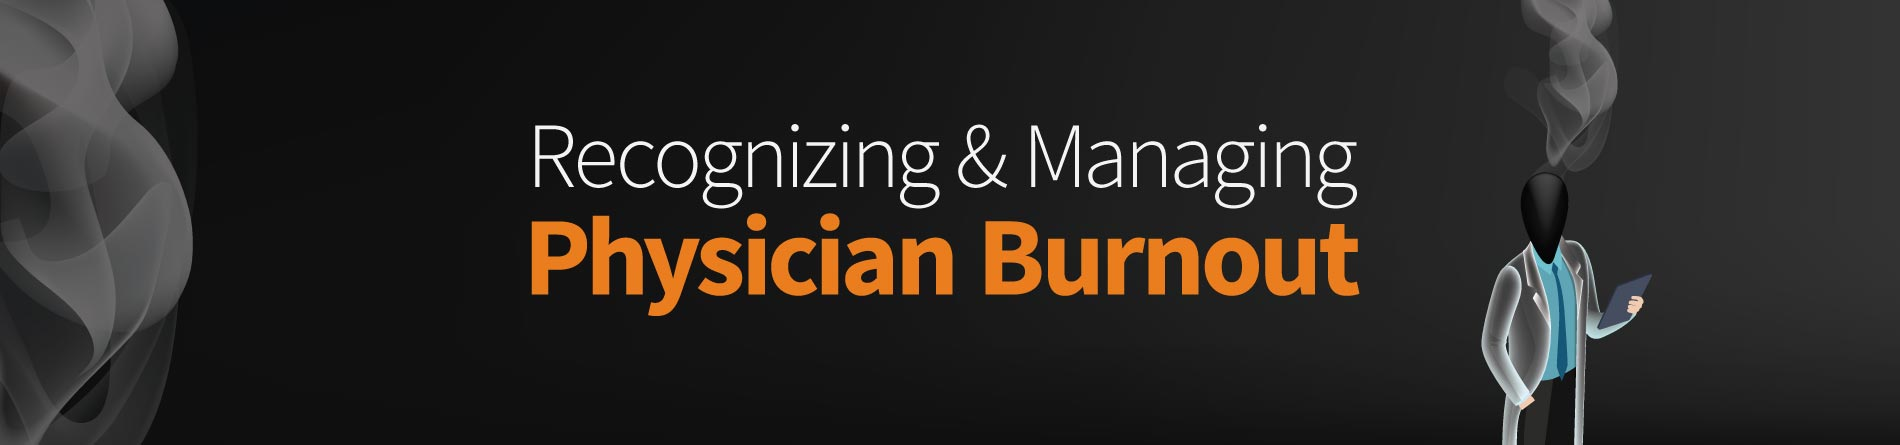 Recognizing & Managing Physician Burnout